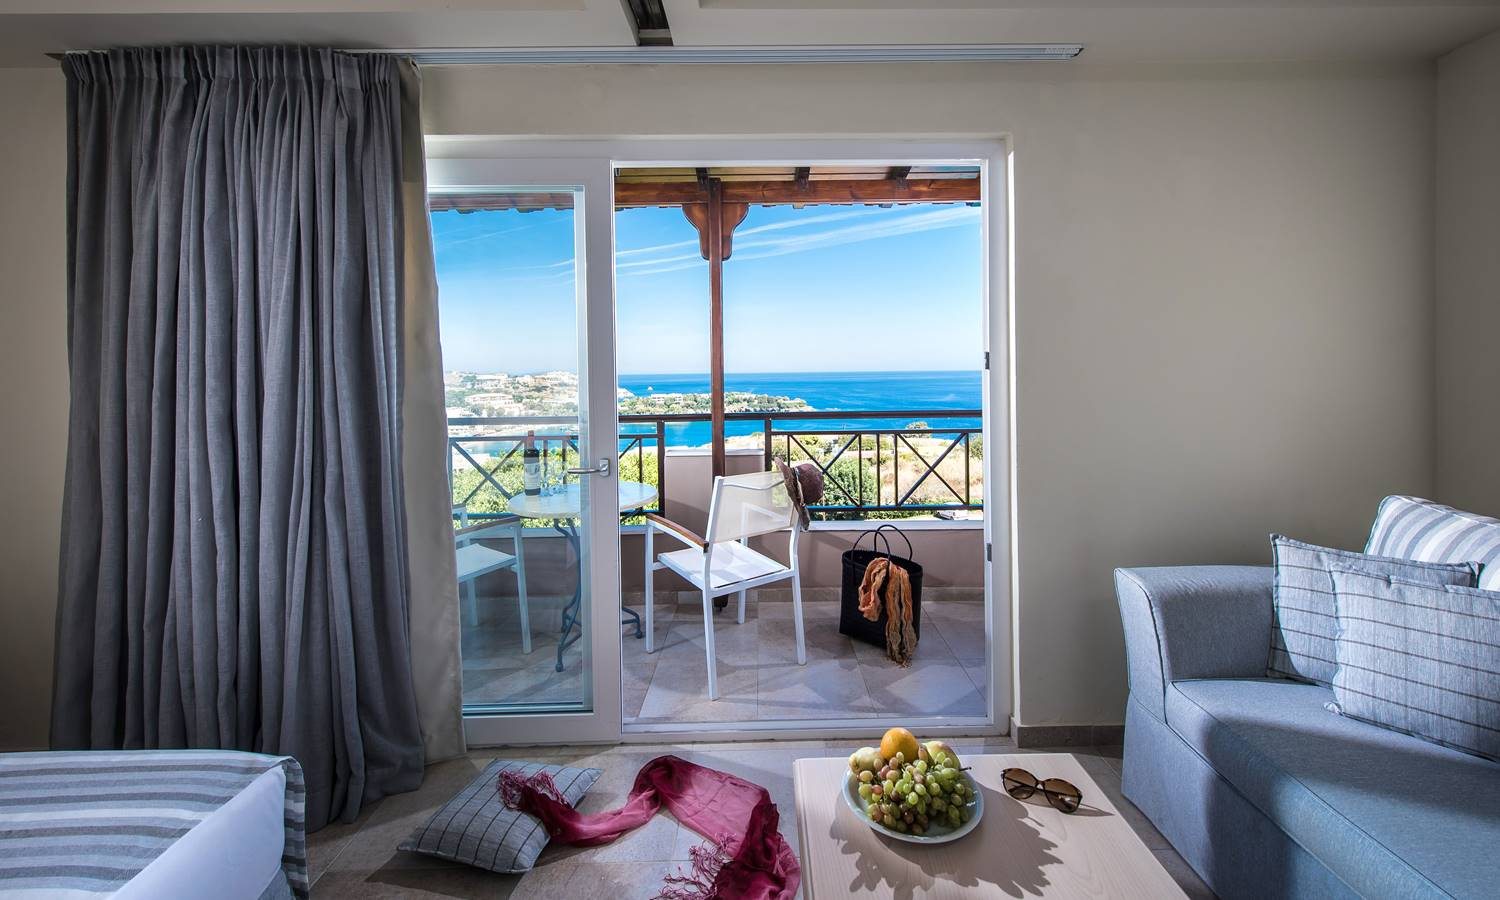 Irida Hotel Apartments in Agia Pelagia, Heraklion